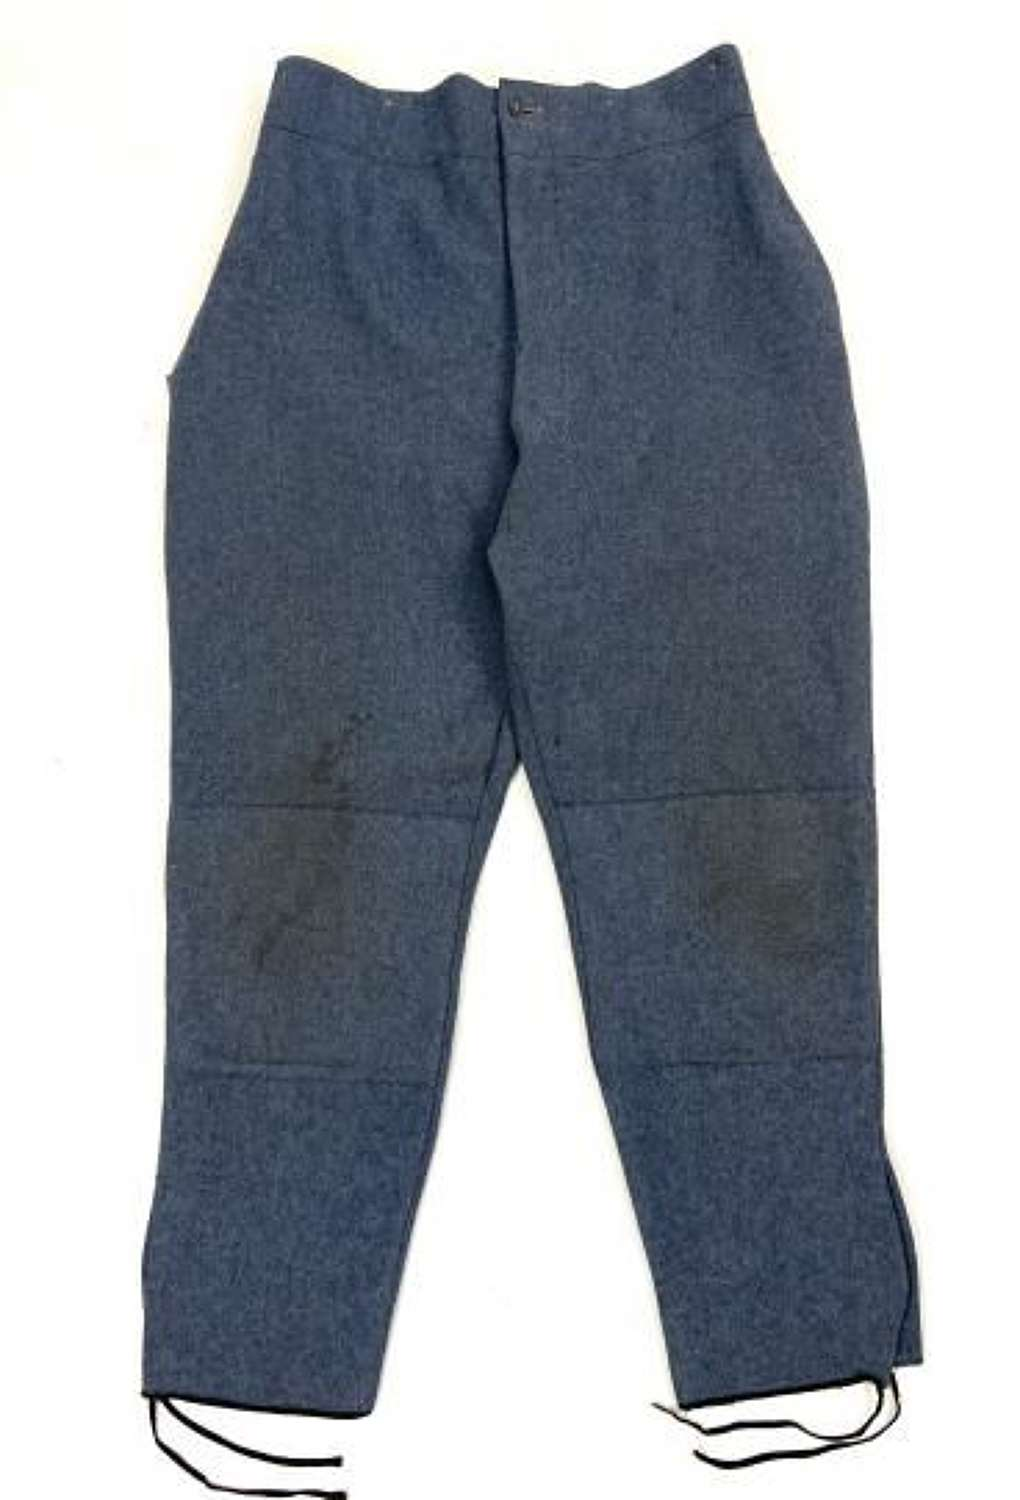 Original Great War French Army Horizon Blue Enlisted Men's Trousers